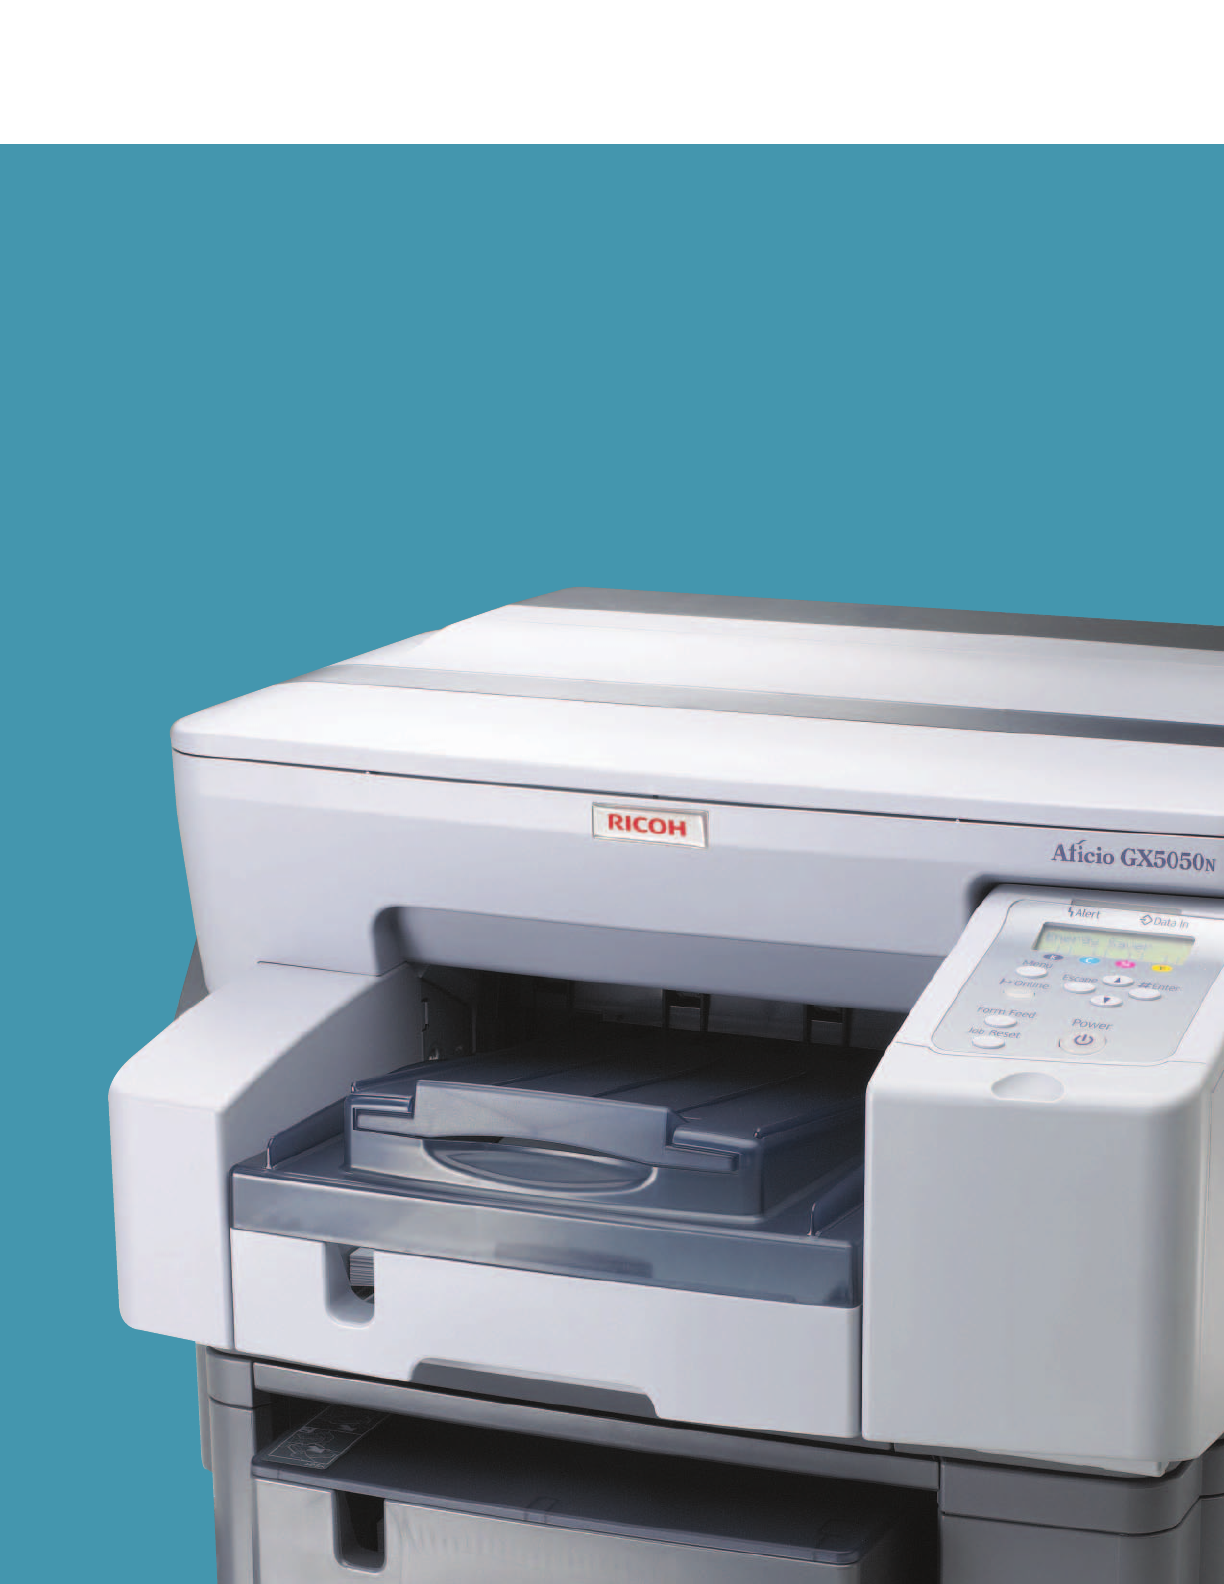 RICOH AFICIO GX 3000 RPCS RASTER DRIVERS FOR MAC DOWNLOAD